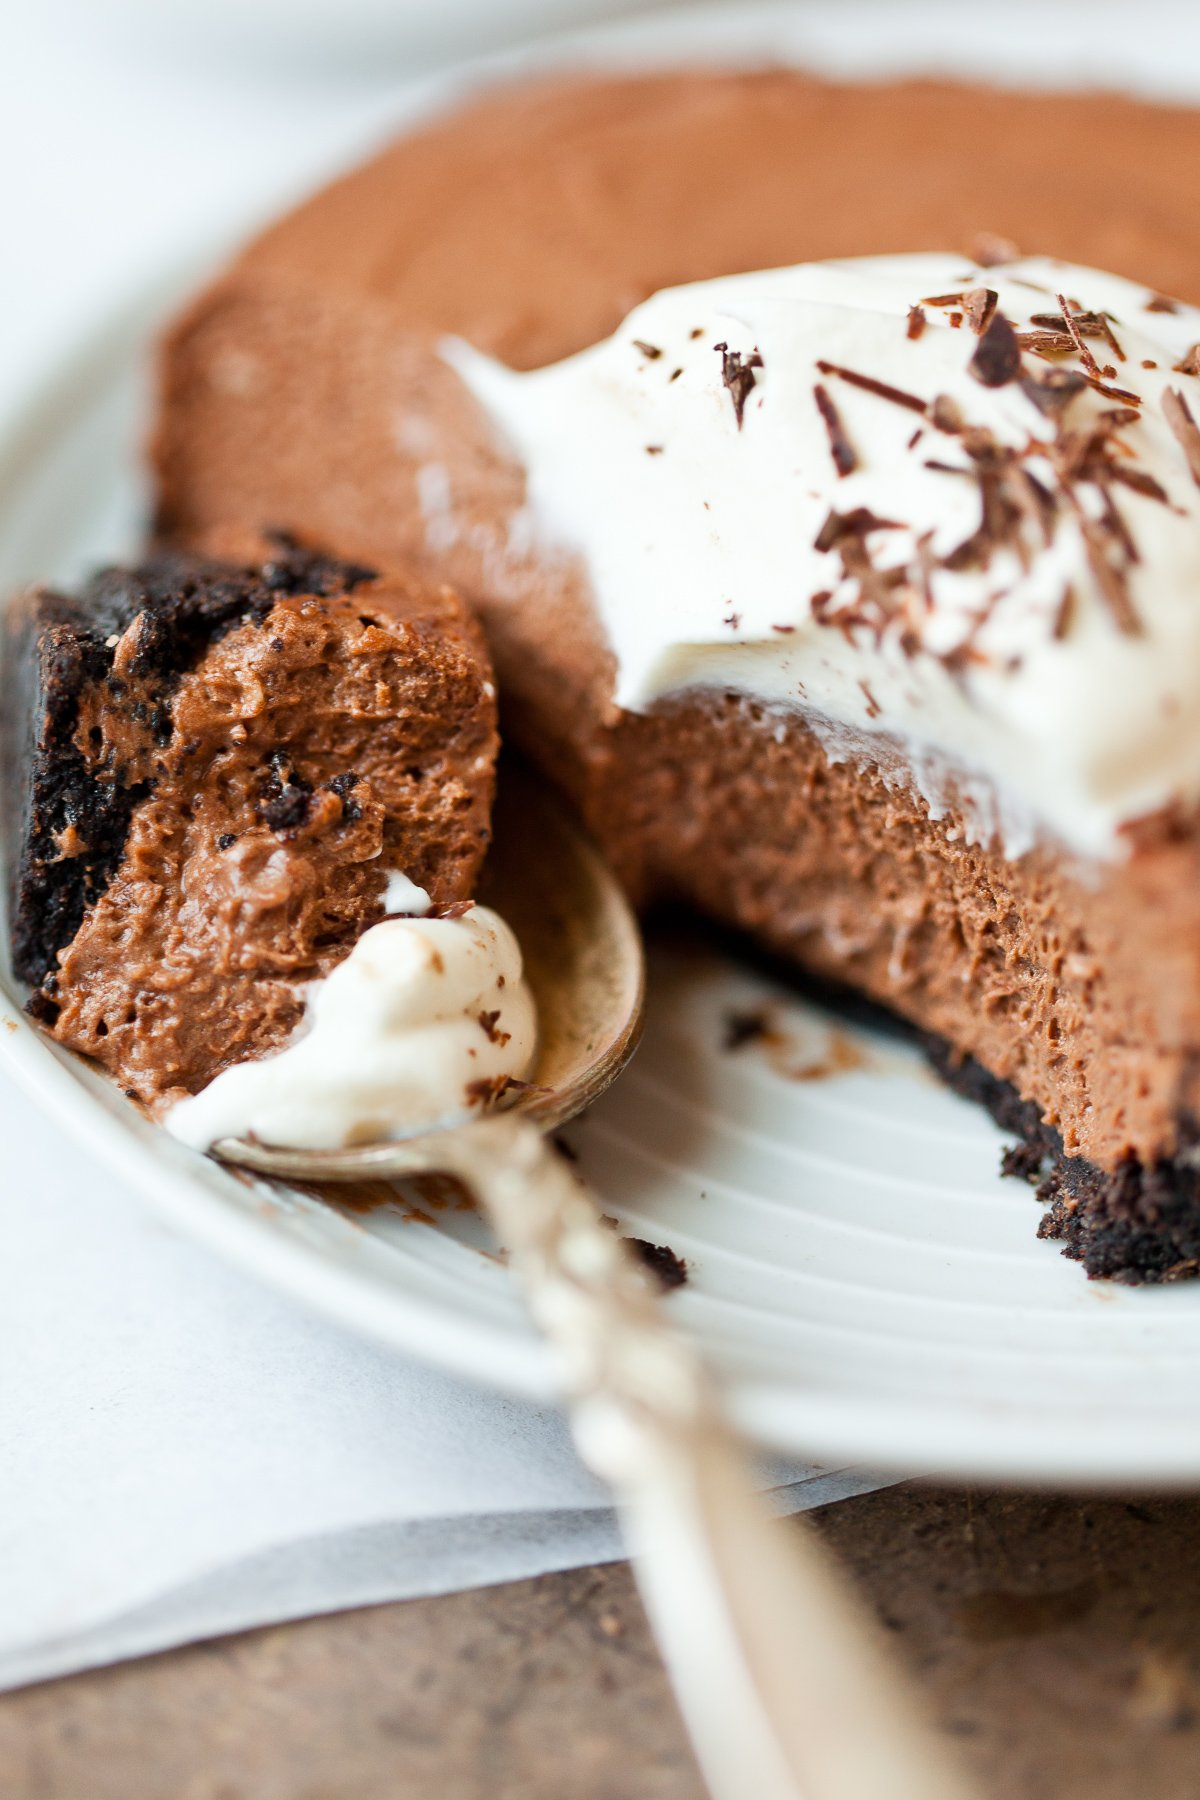 A close up photo of a frozen chocolate semifreddo dessert on a spoon with whipped cream and chocolate shavings.